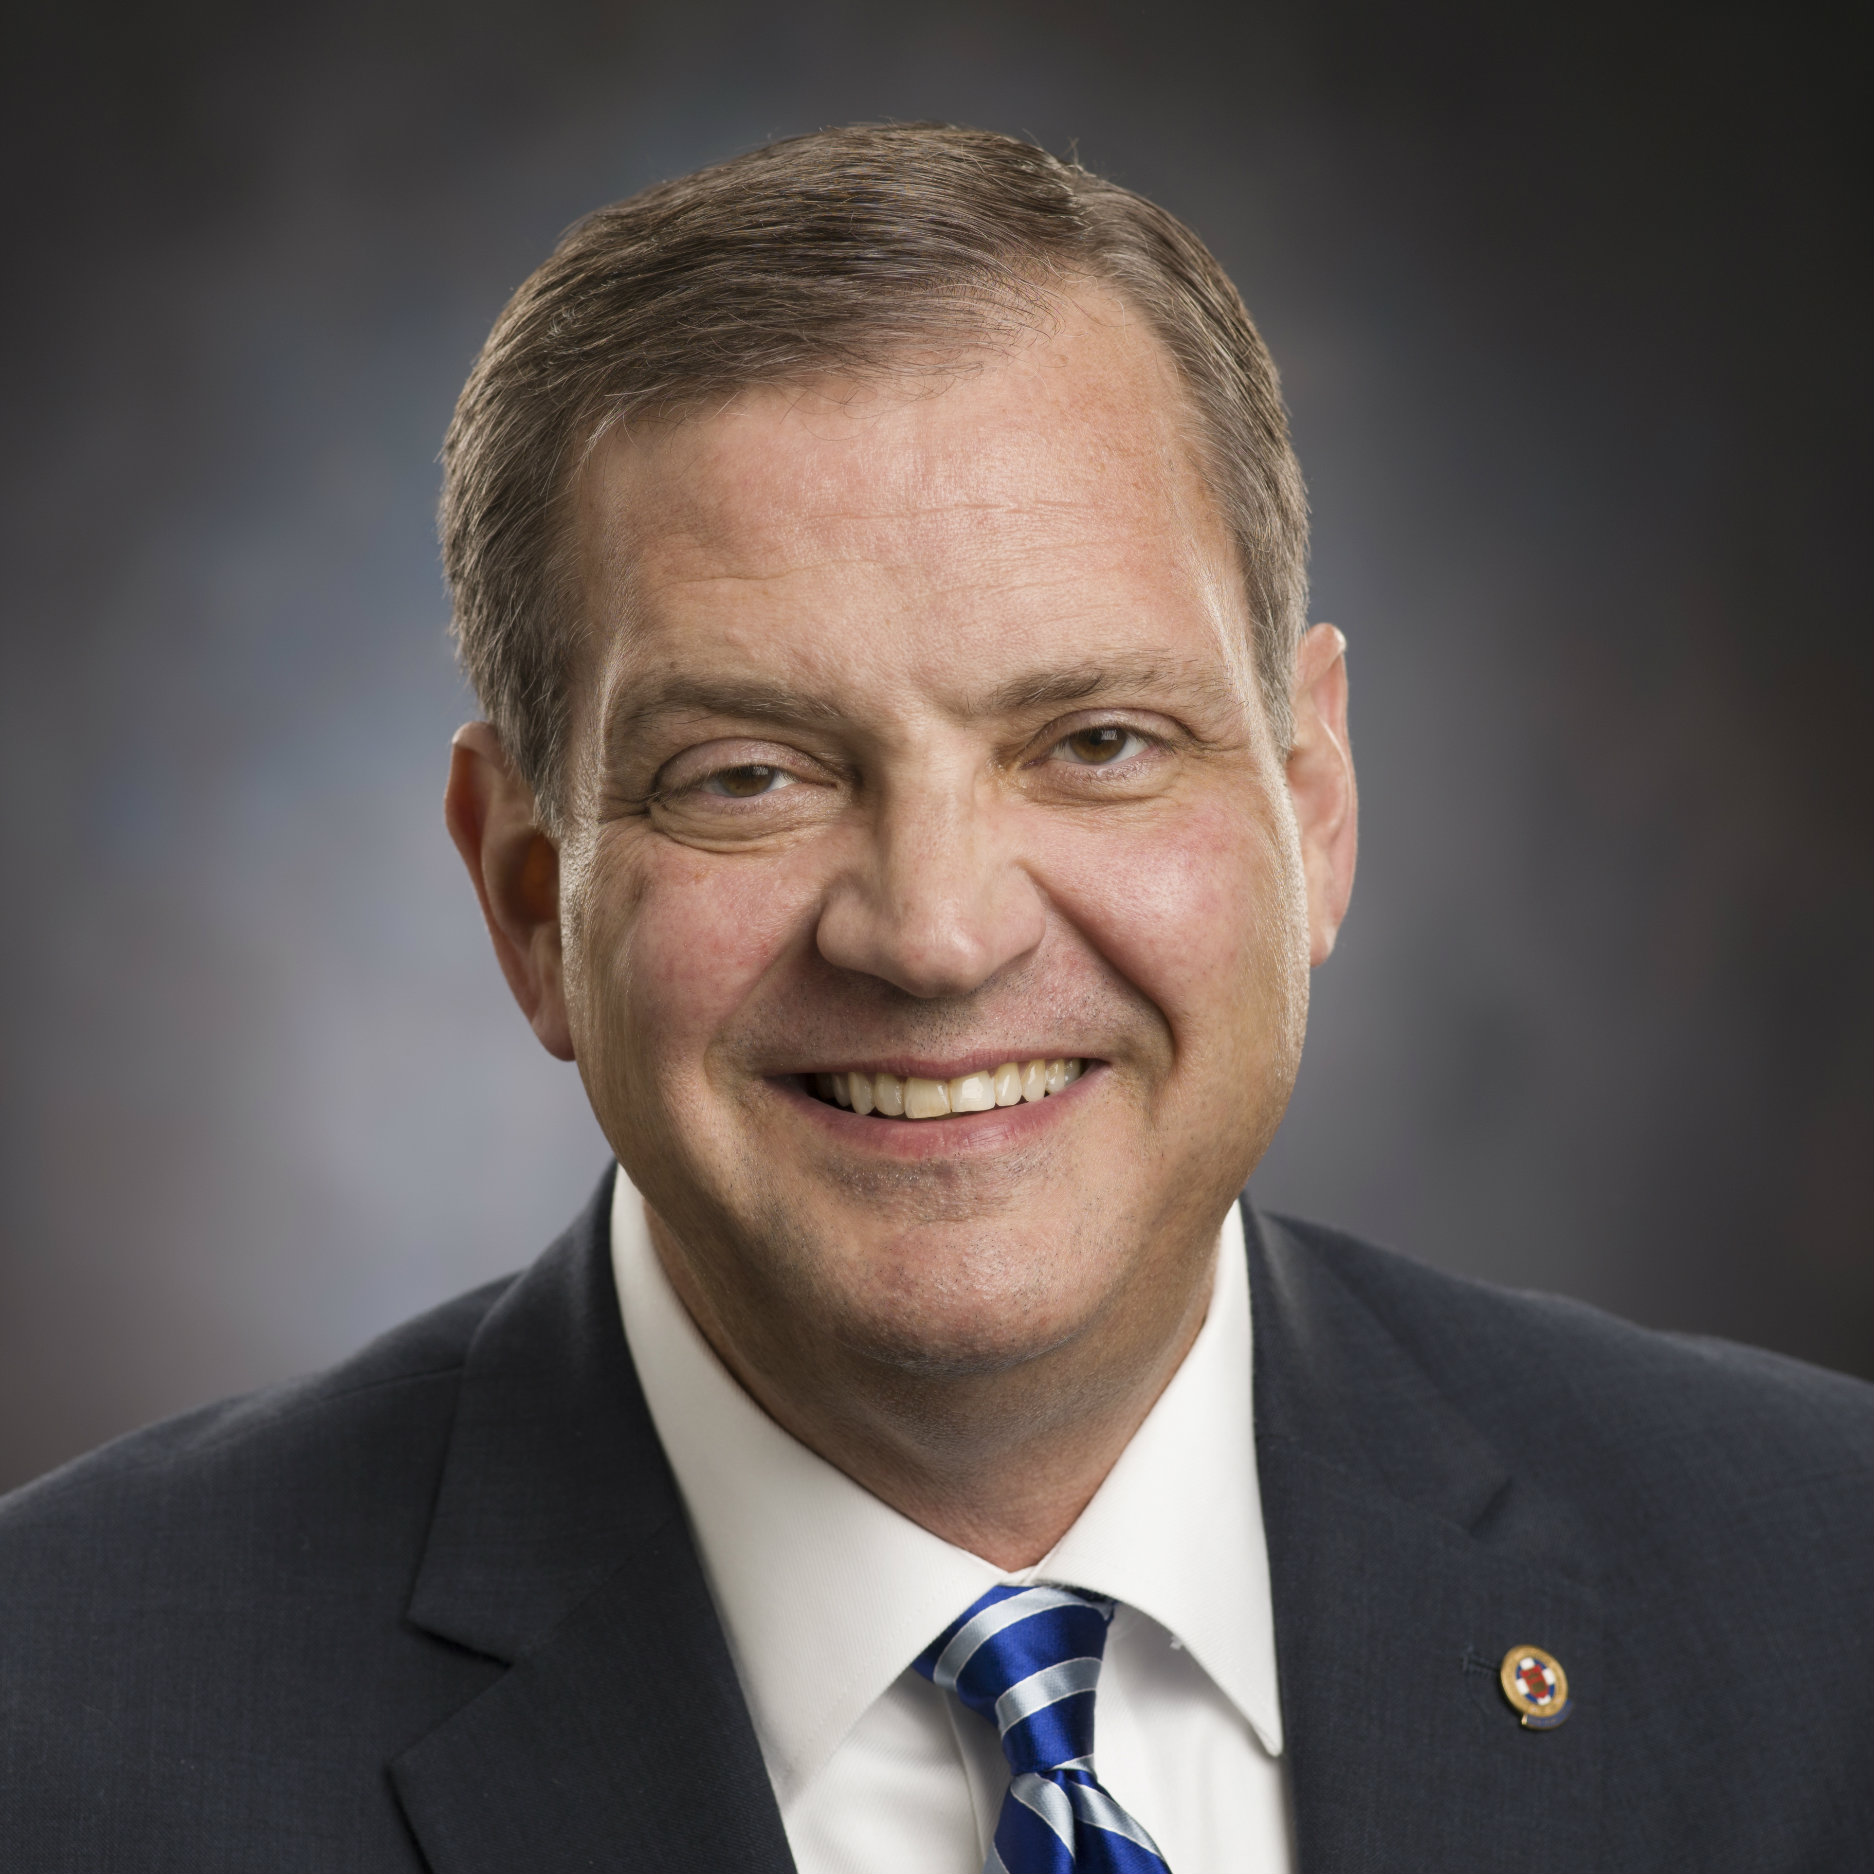 lit desiring god albert mohler president the southern baptist theological seminary